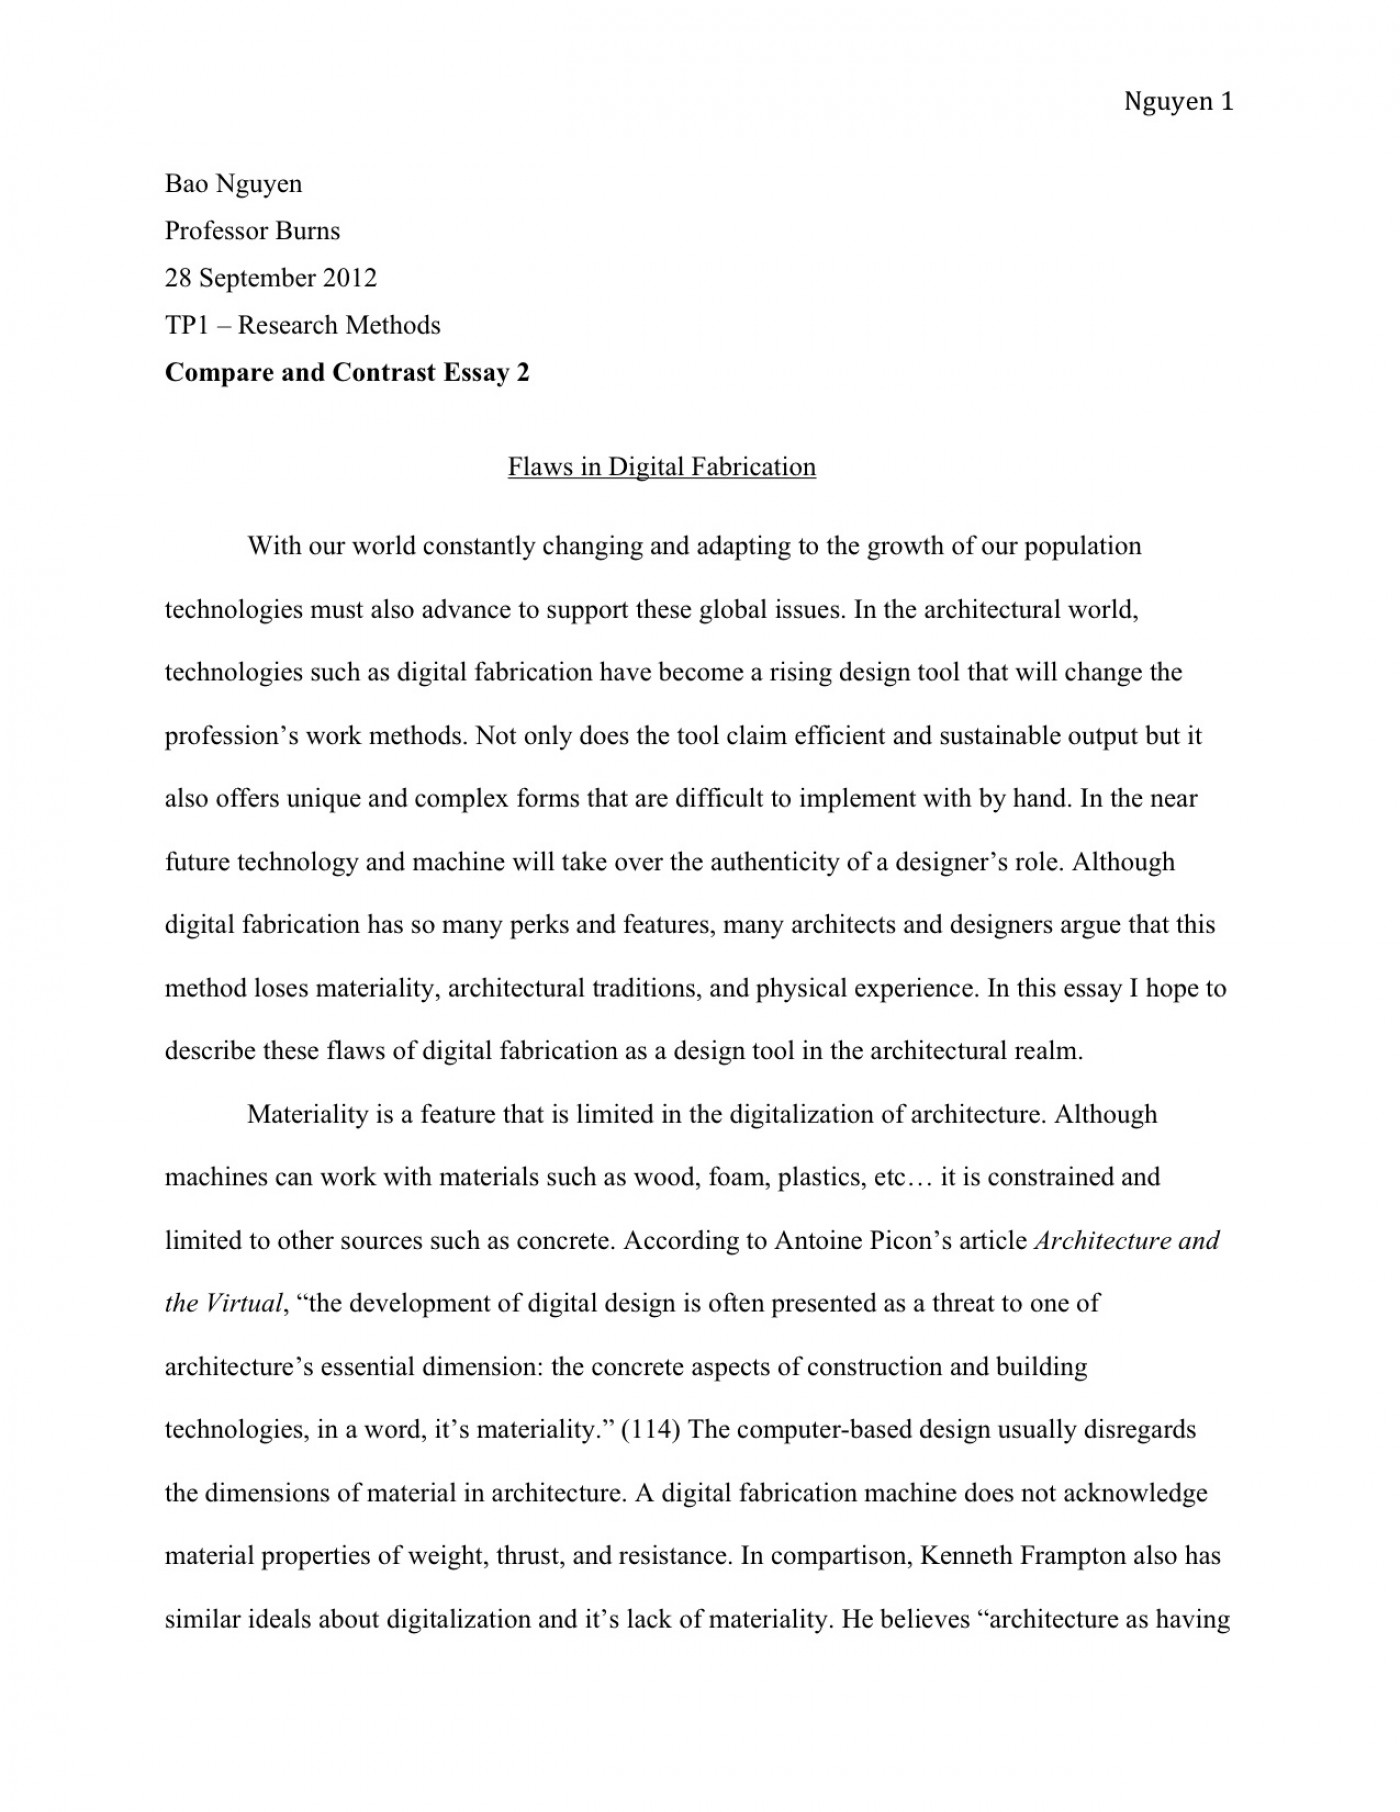 005 Essay Example With Thesis Tp1 3 Breathtaking Personal Narrative Statement And Topic Sentence Format 1400